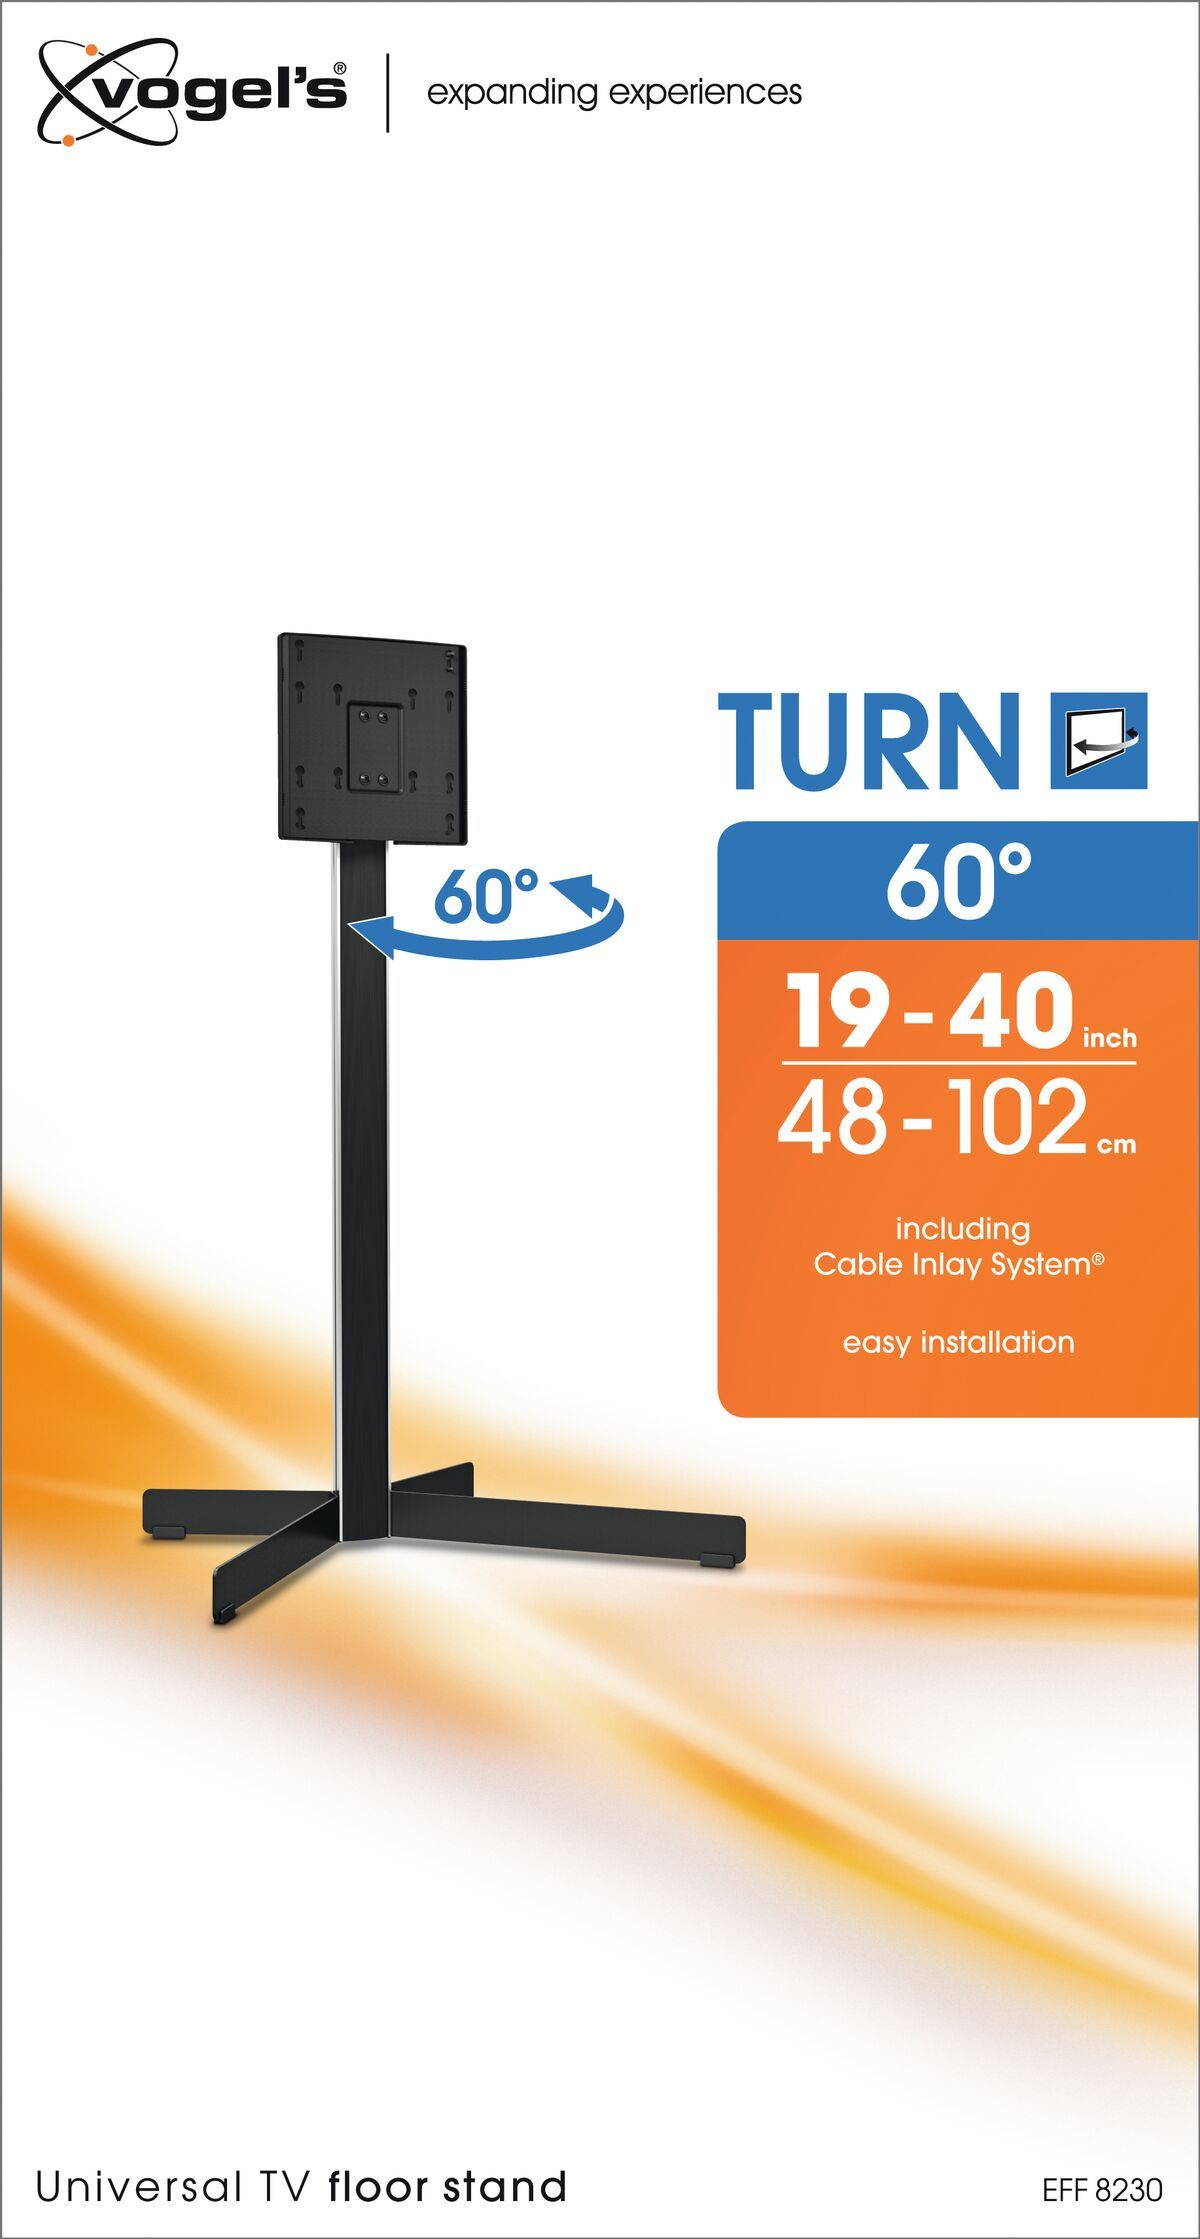 Vogel's EFF 8230 TV Floor Stand - Suitable for 19 up to 40 inch TVs up to 30 kg - Packaging front